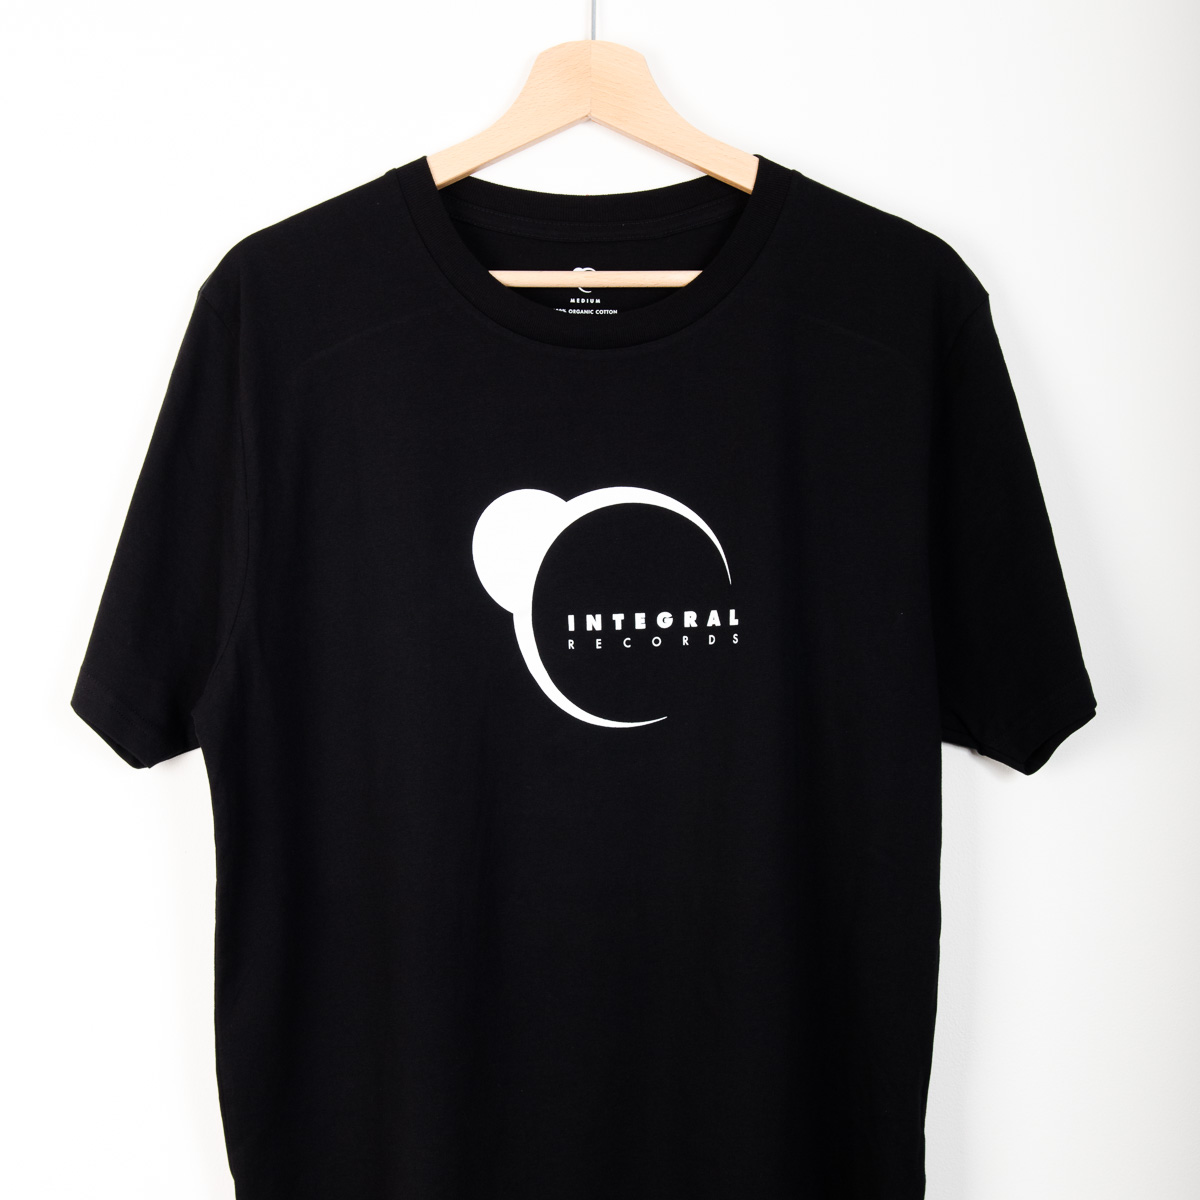 Integral Records Tee - White Print on Black